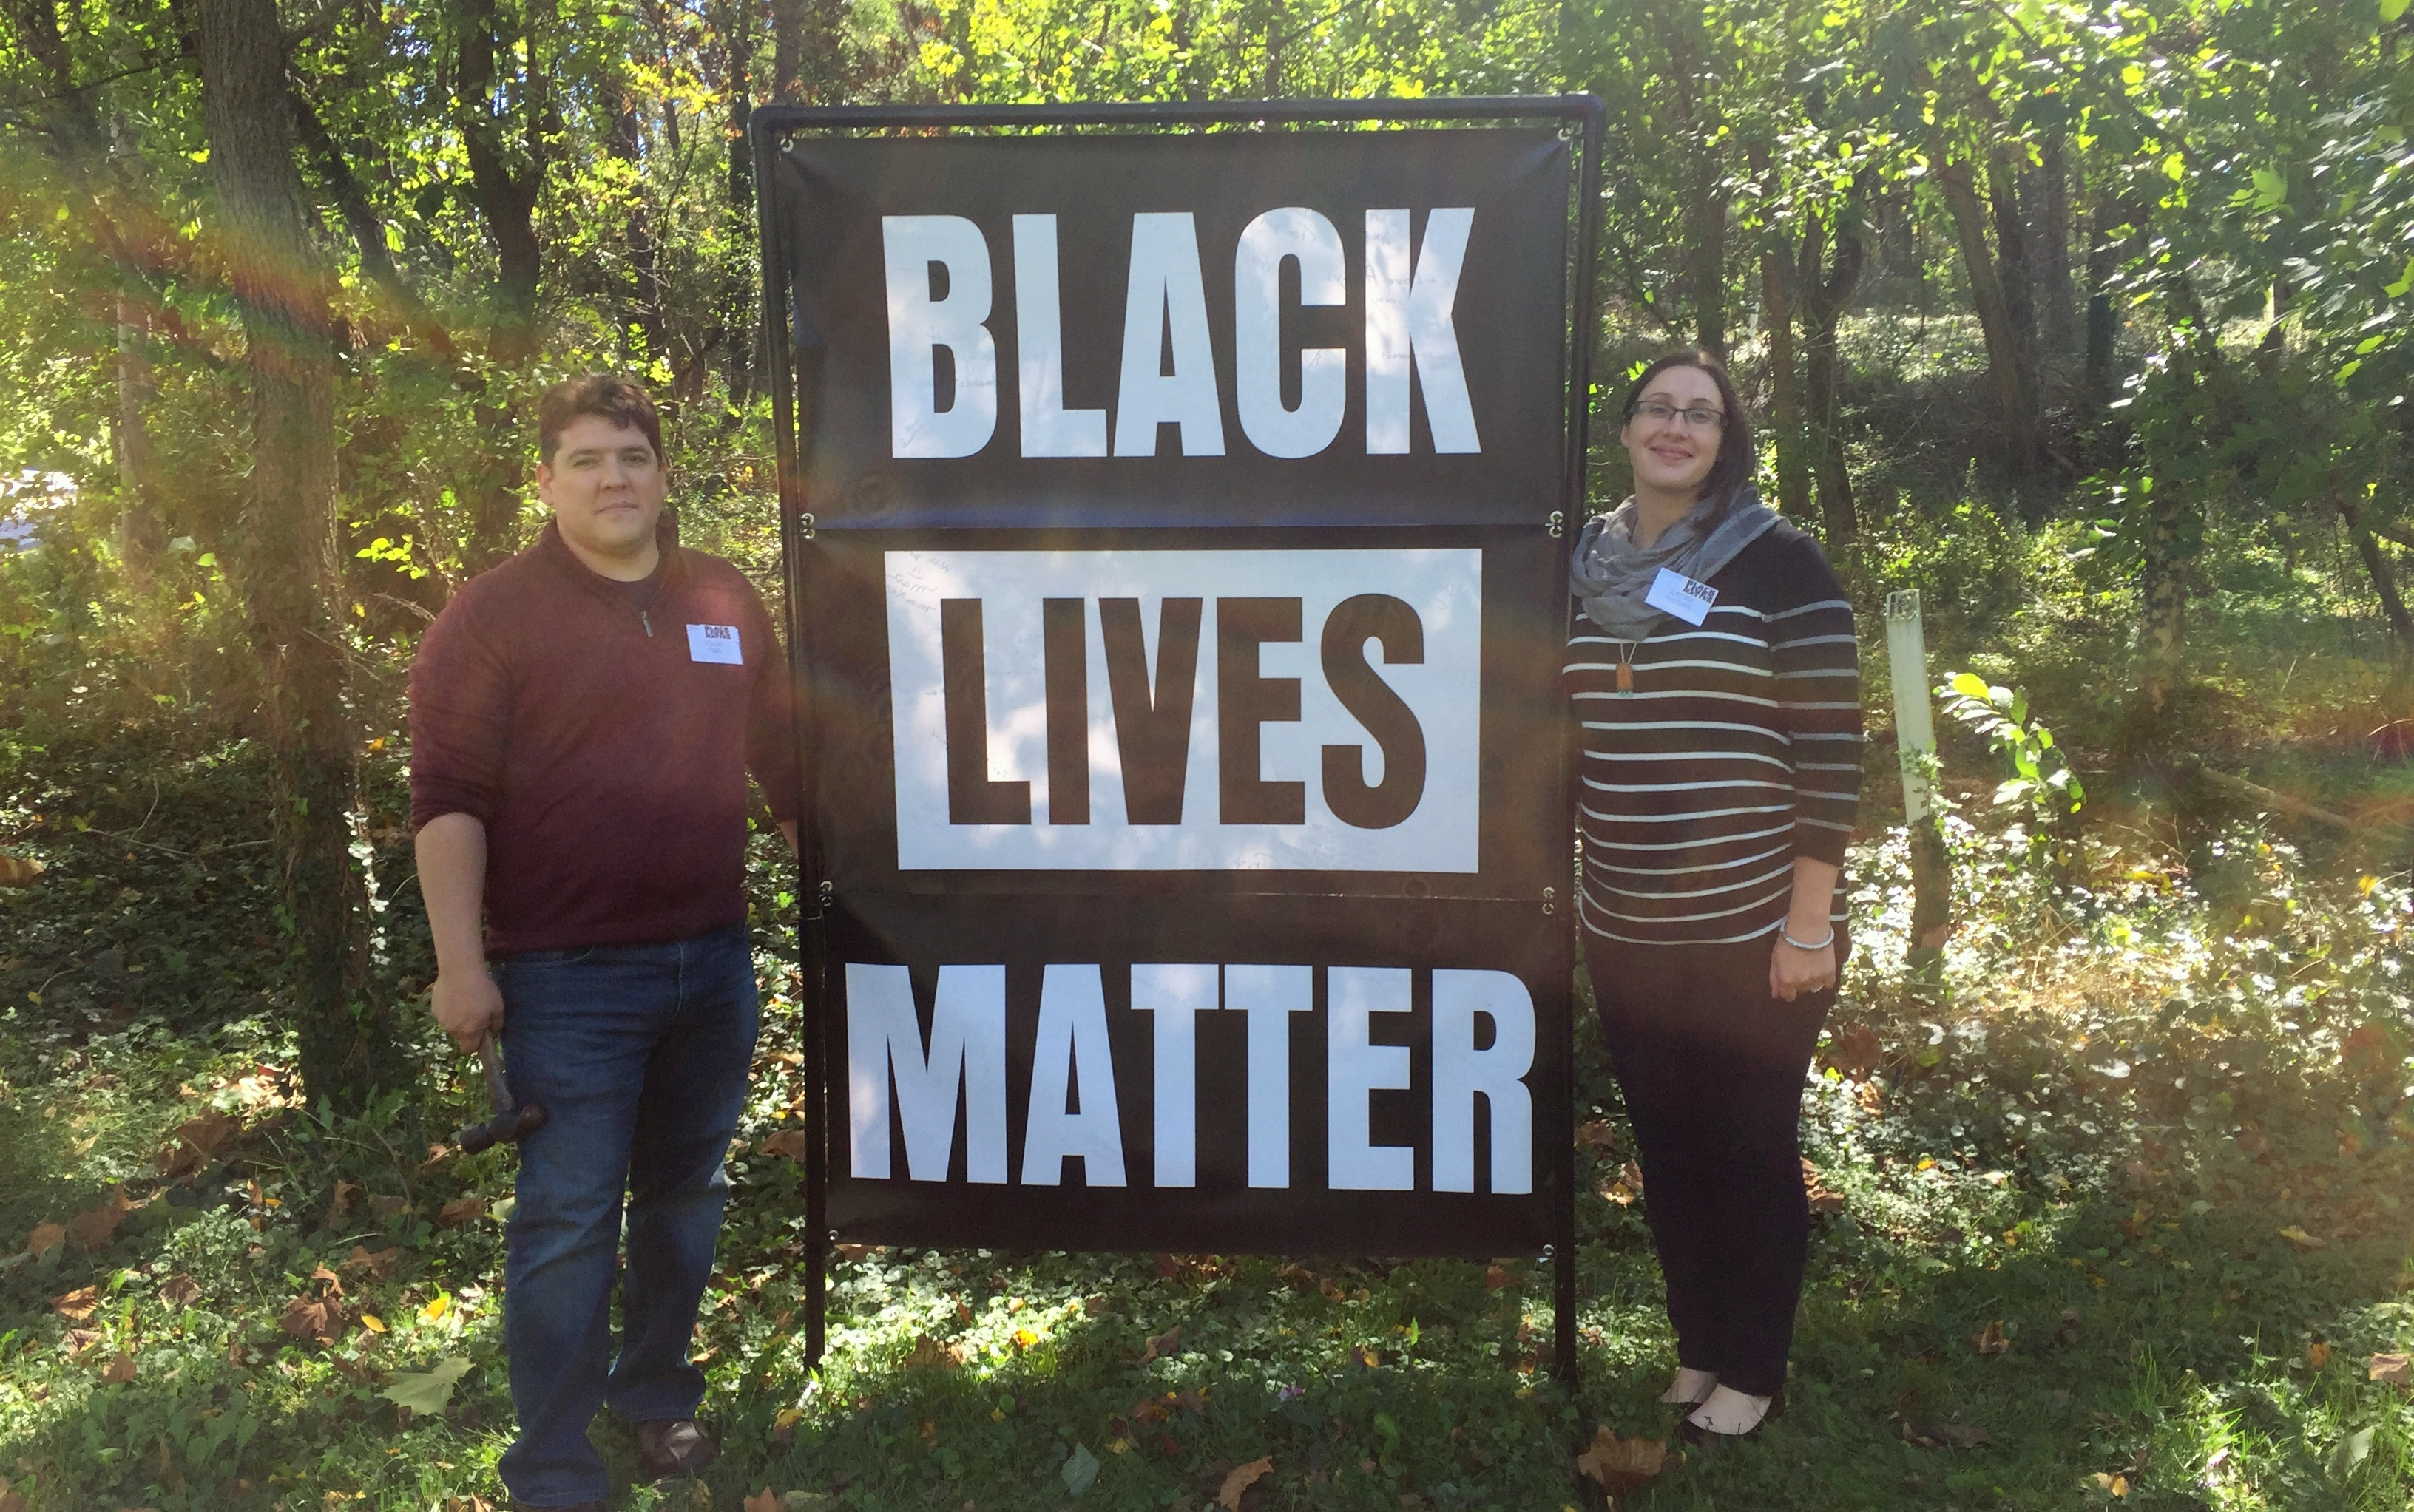 Dave and Justina Toia with the Towson Unitarian Universalist Church's banner. (Stephen F. Pearn-Brown)